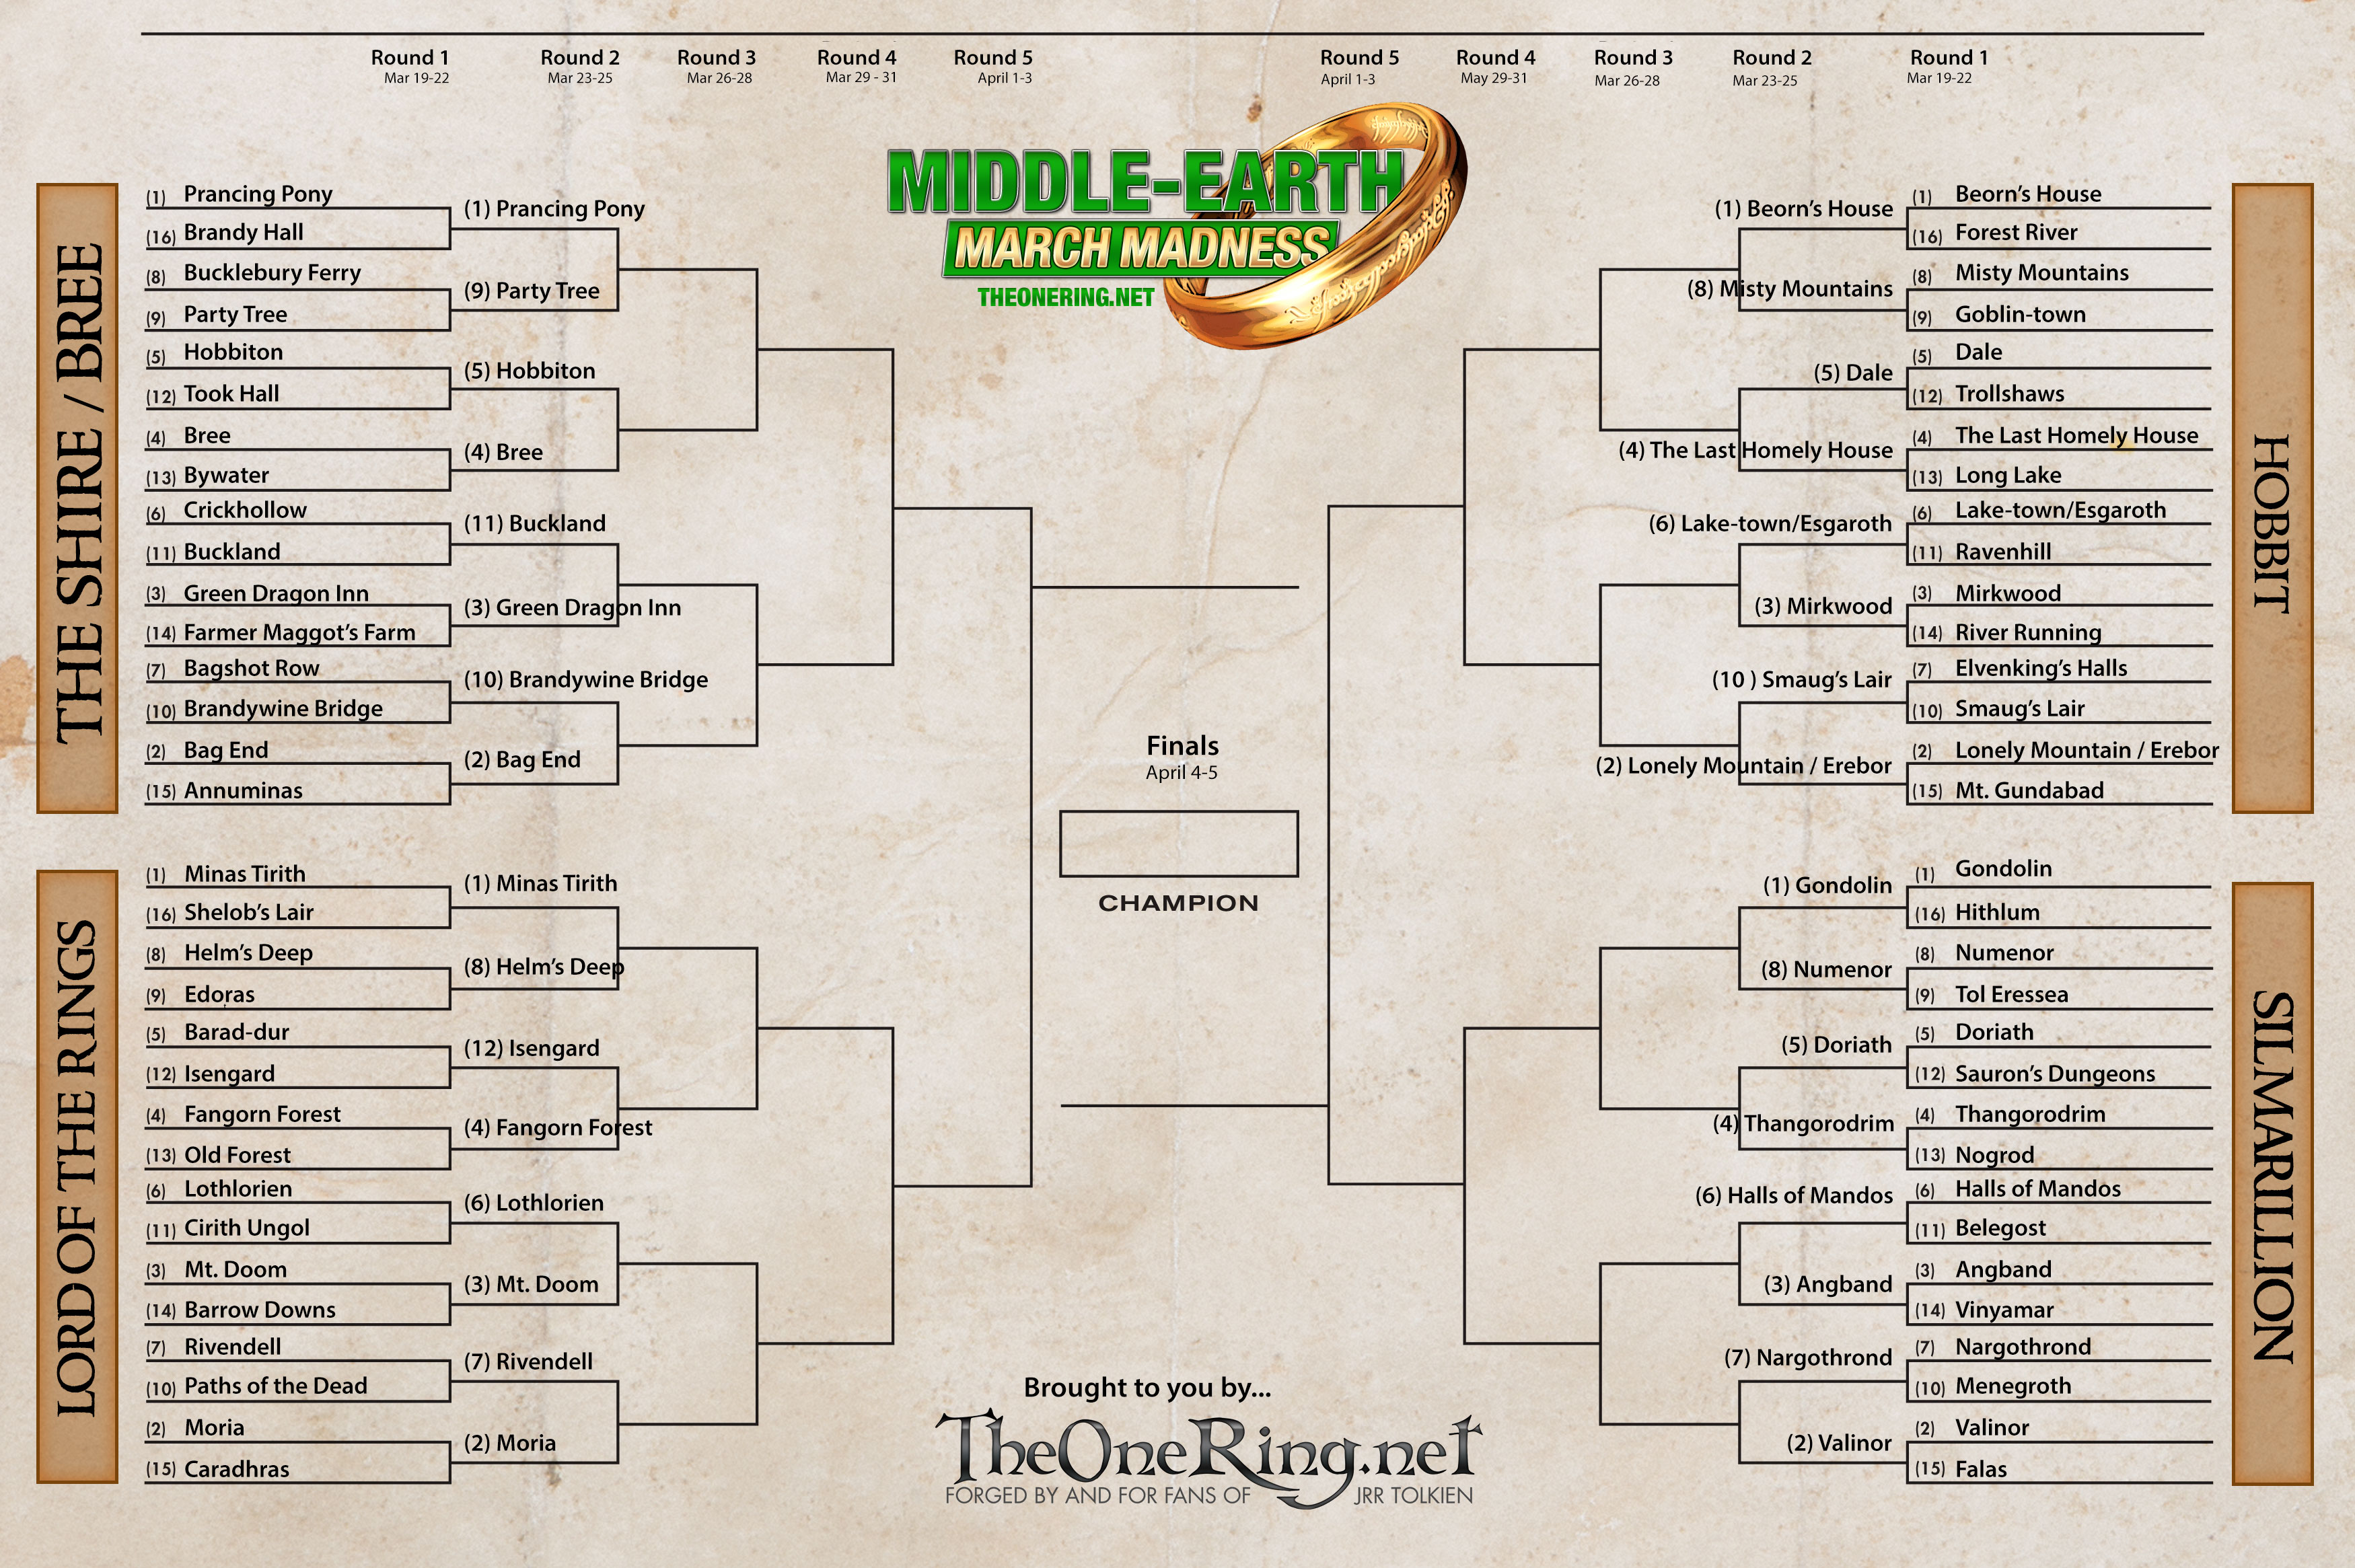 Middle earth Map March Madness Round 2 update! | J.R.R. Tolkien